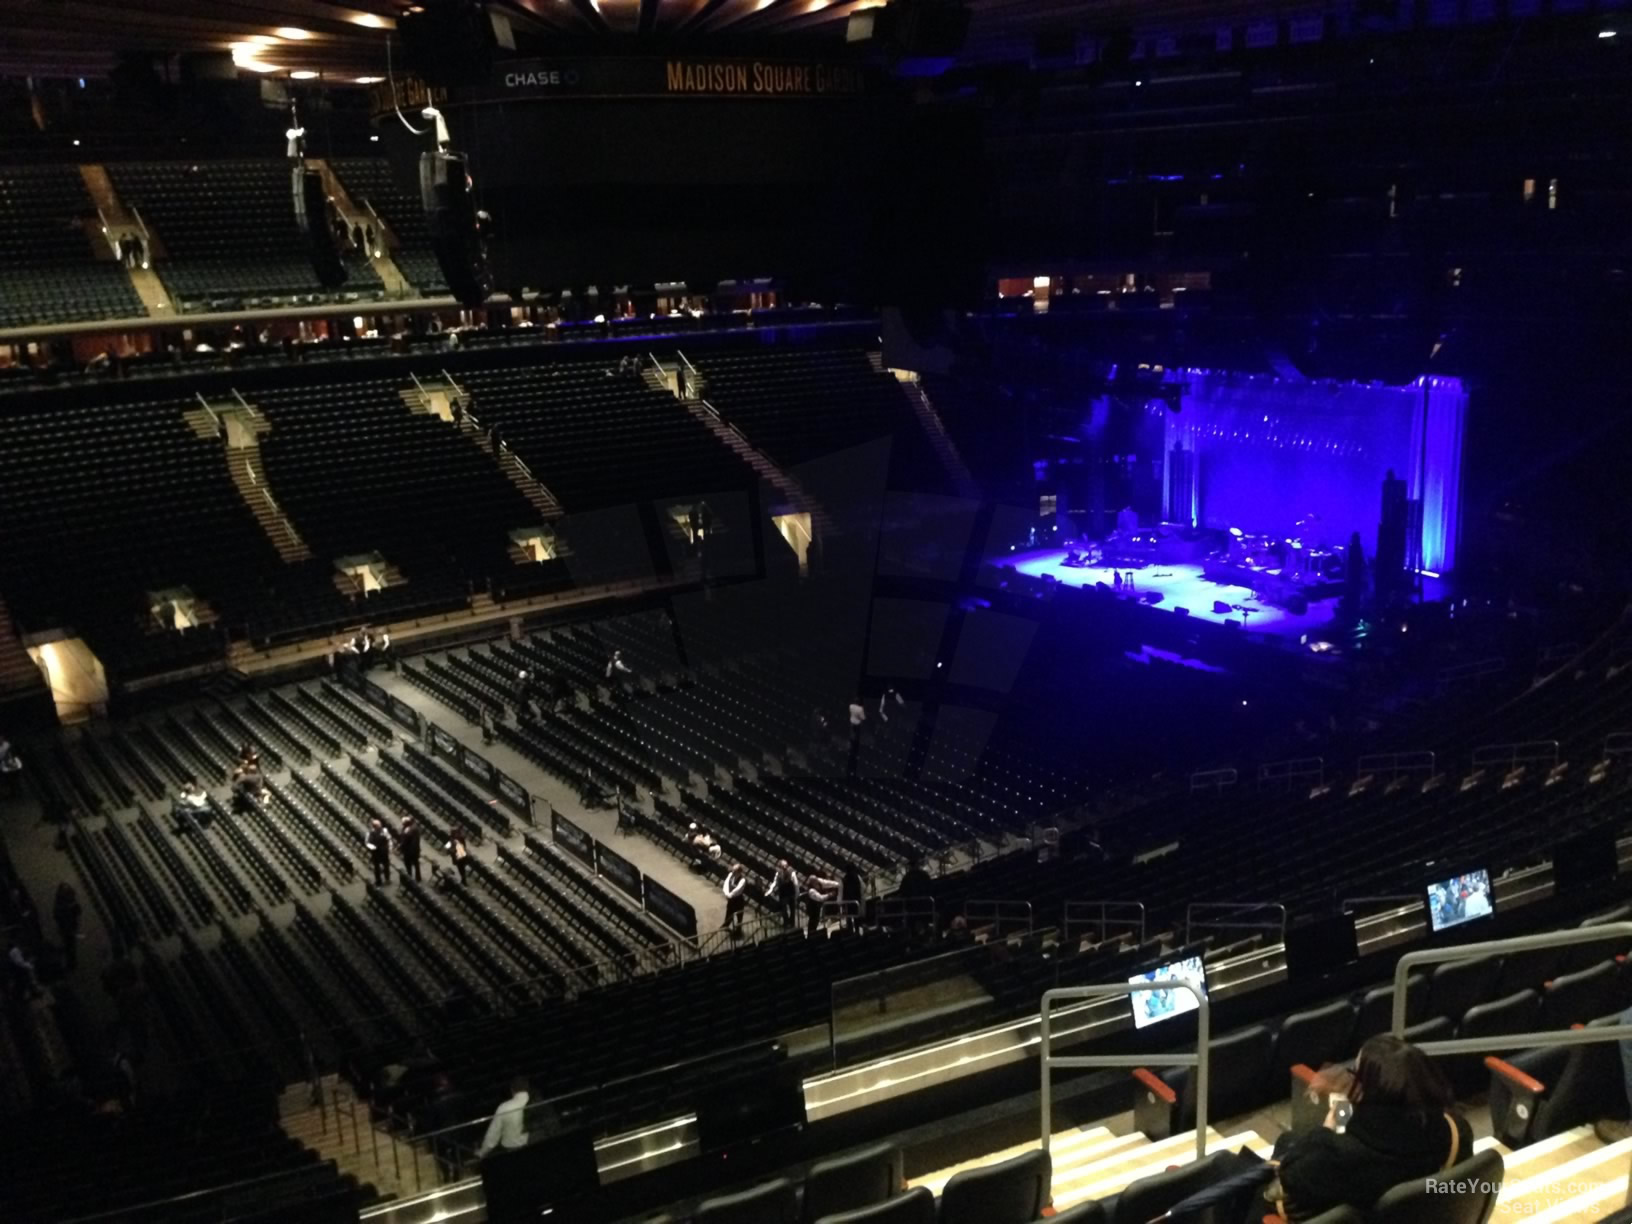 Madison Square Garden Section 209 Concert Seating ...